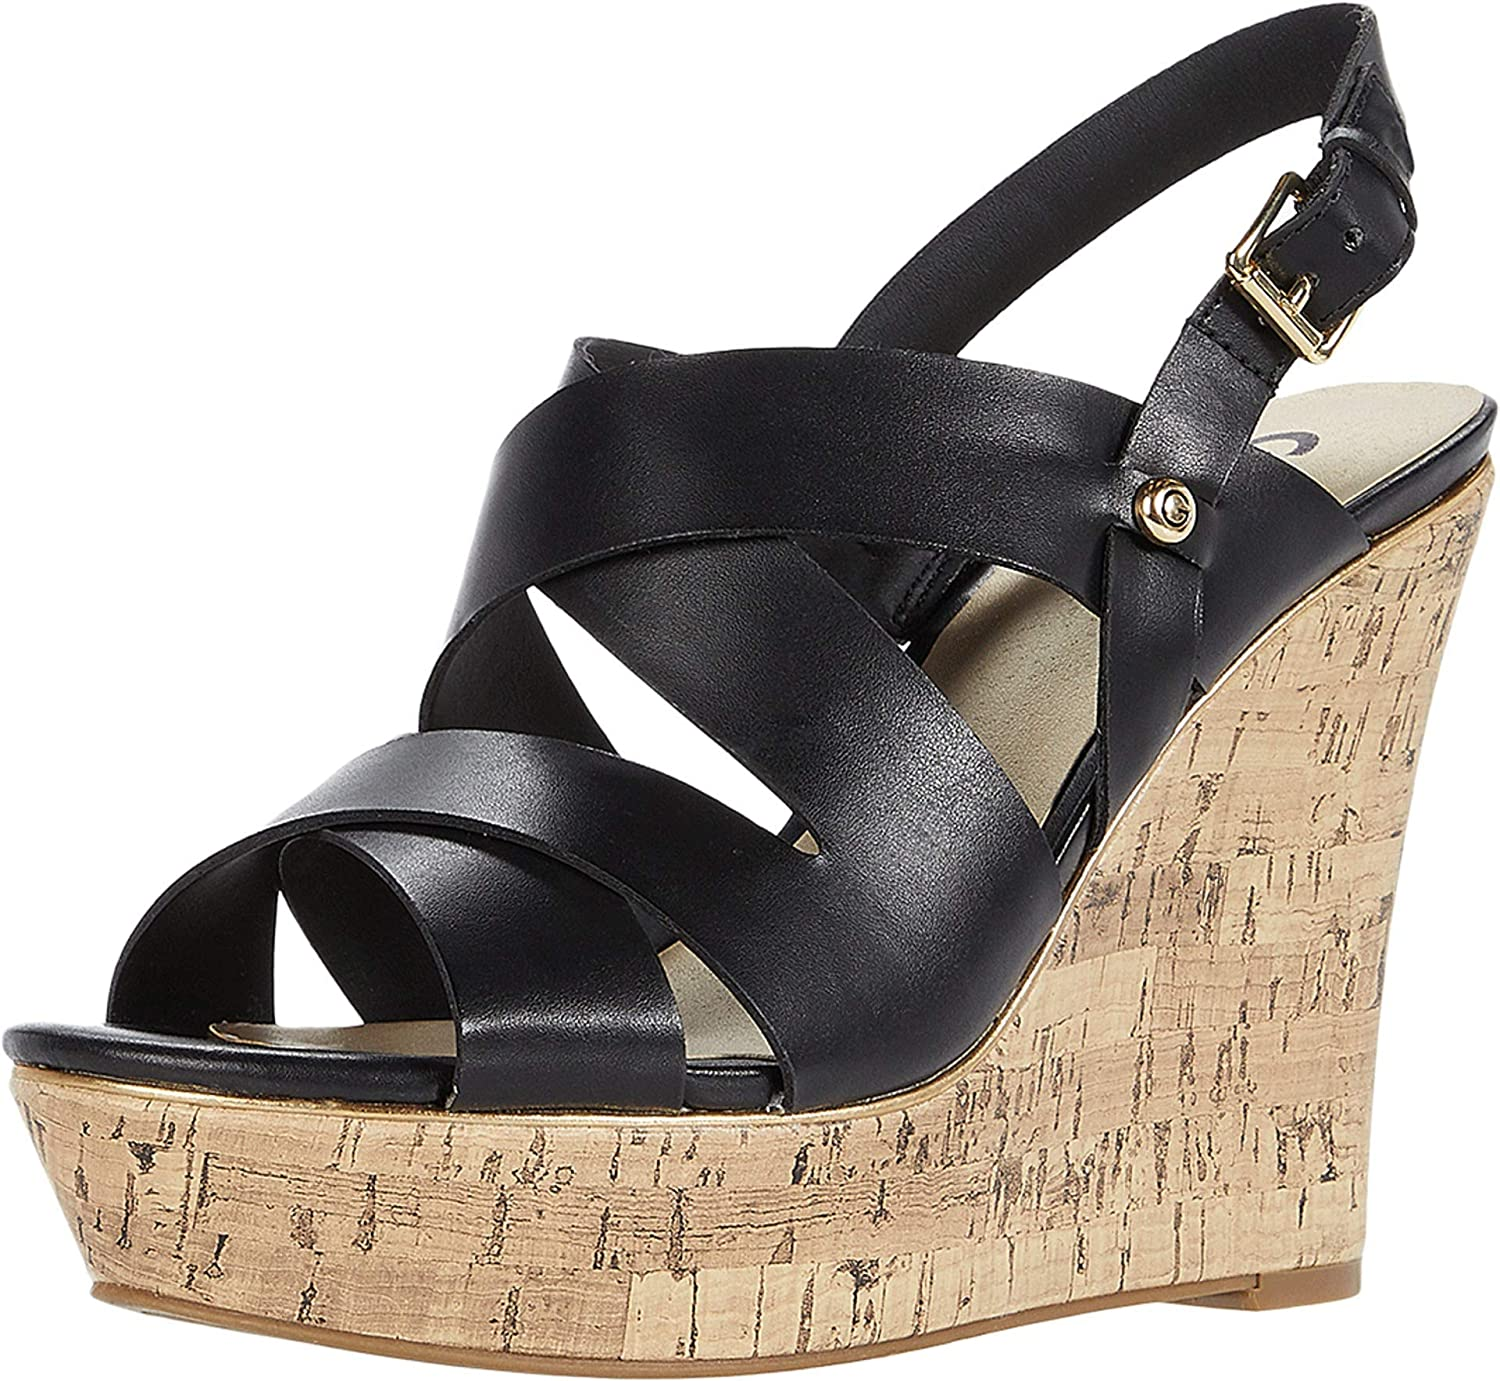 GBG Los Angeles Dax Limited Special cheap Price Women for Wedge Sandal